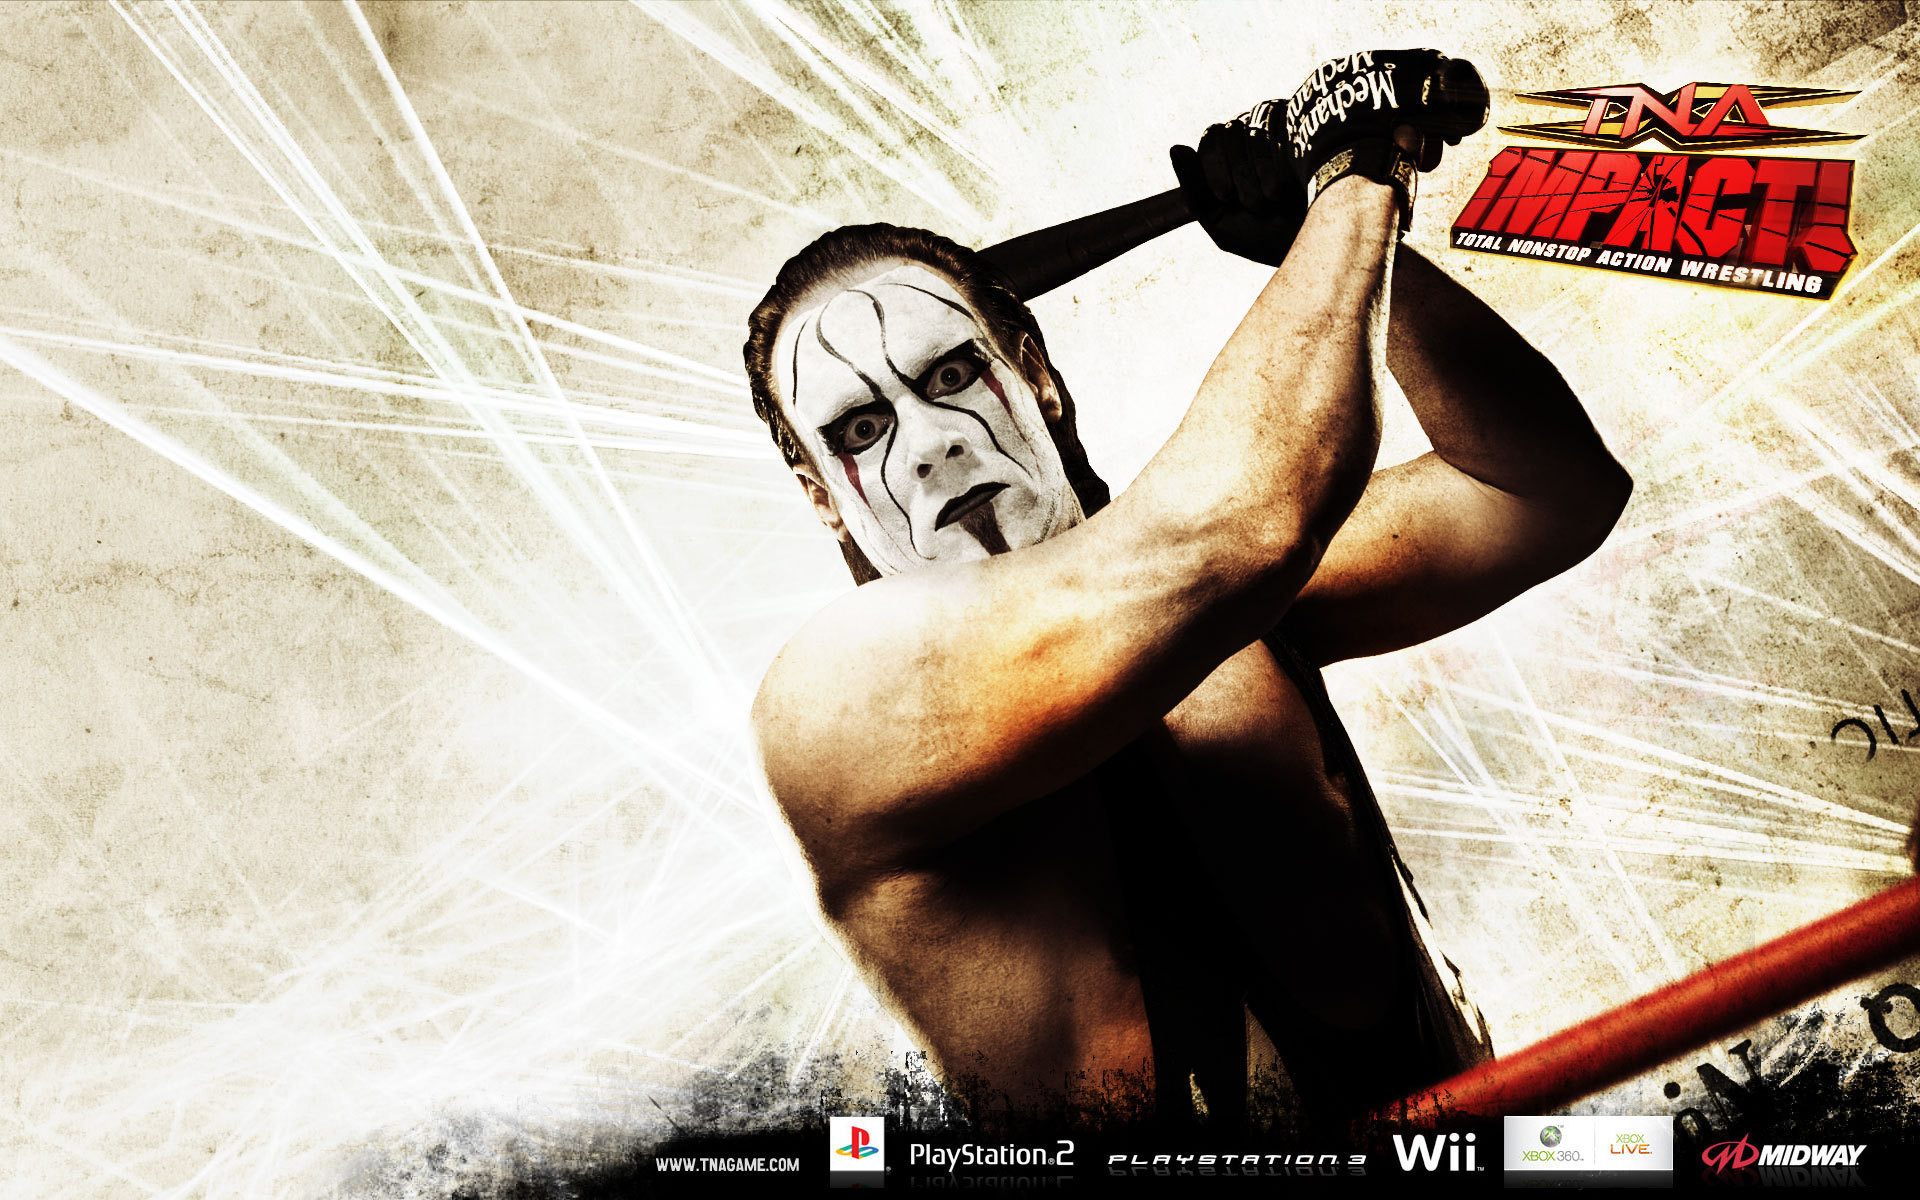 1920x1200 Sting WCW images TNA Impact Sting HD wallpaper and background photos